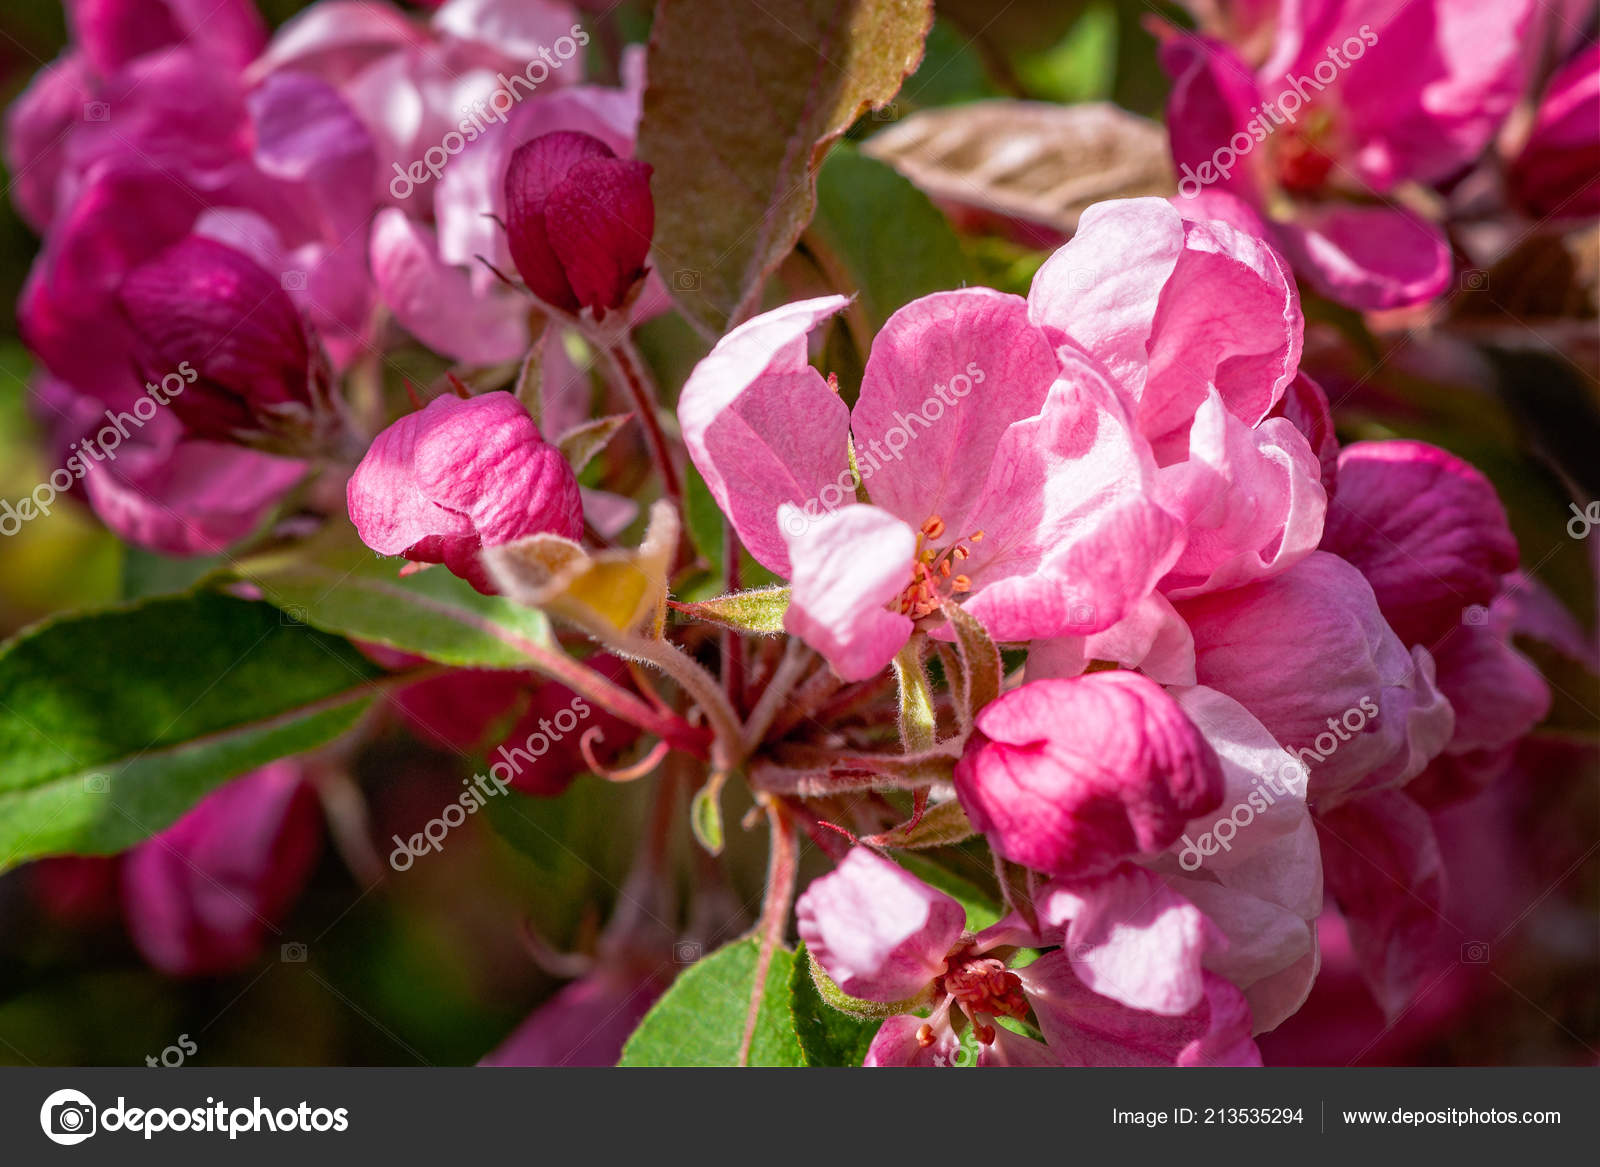 Closeup view crabapple tree bloom clusters bunches pink flowers closeup view crabapple tree bloom clusters bunches pink flowers stylized stock photo mightylinksfo